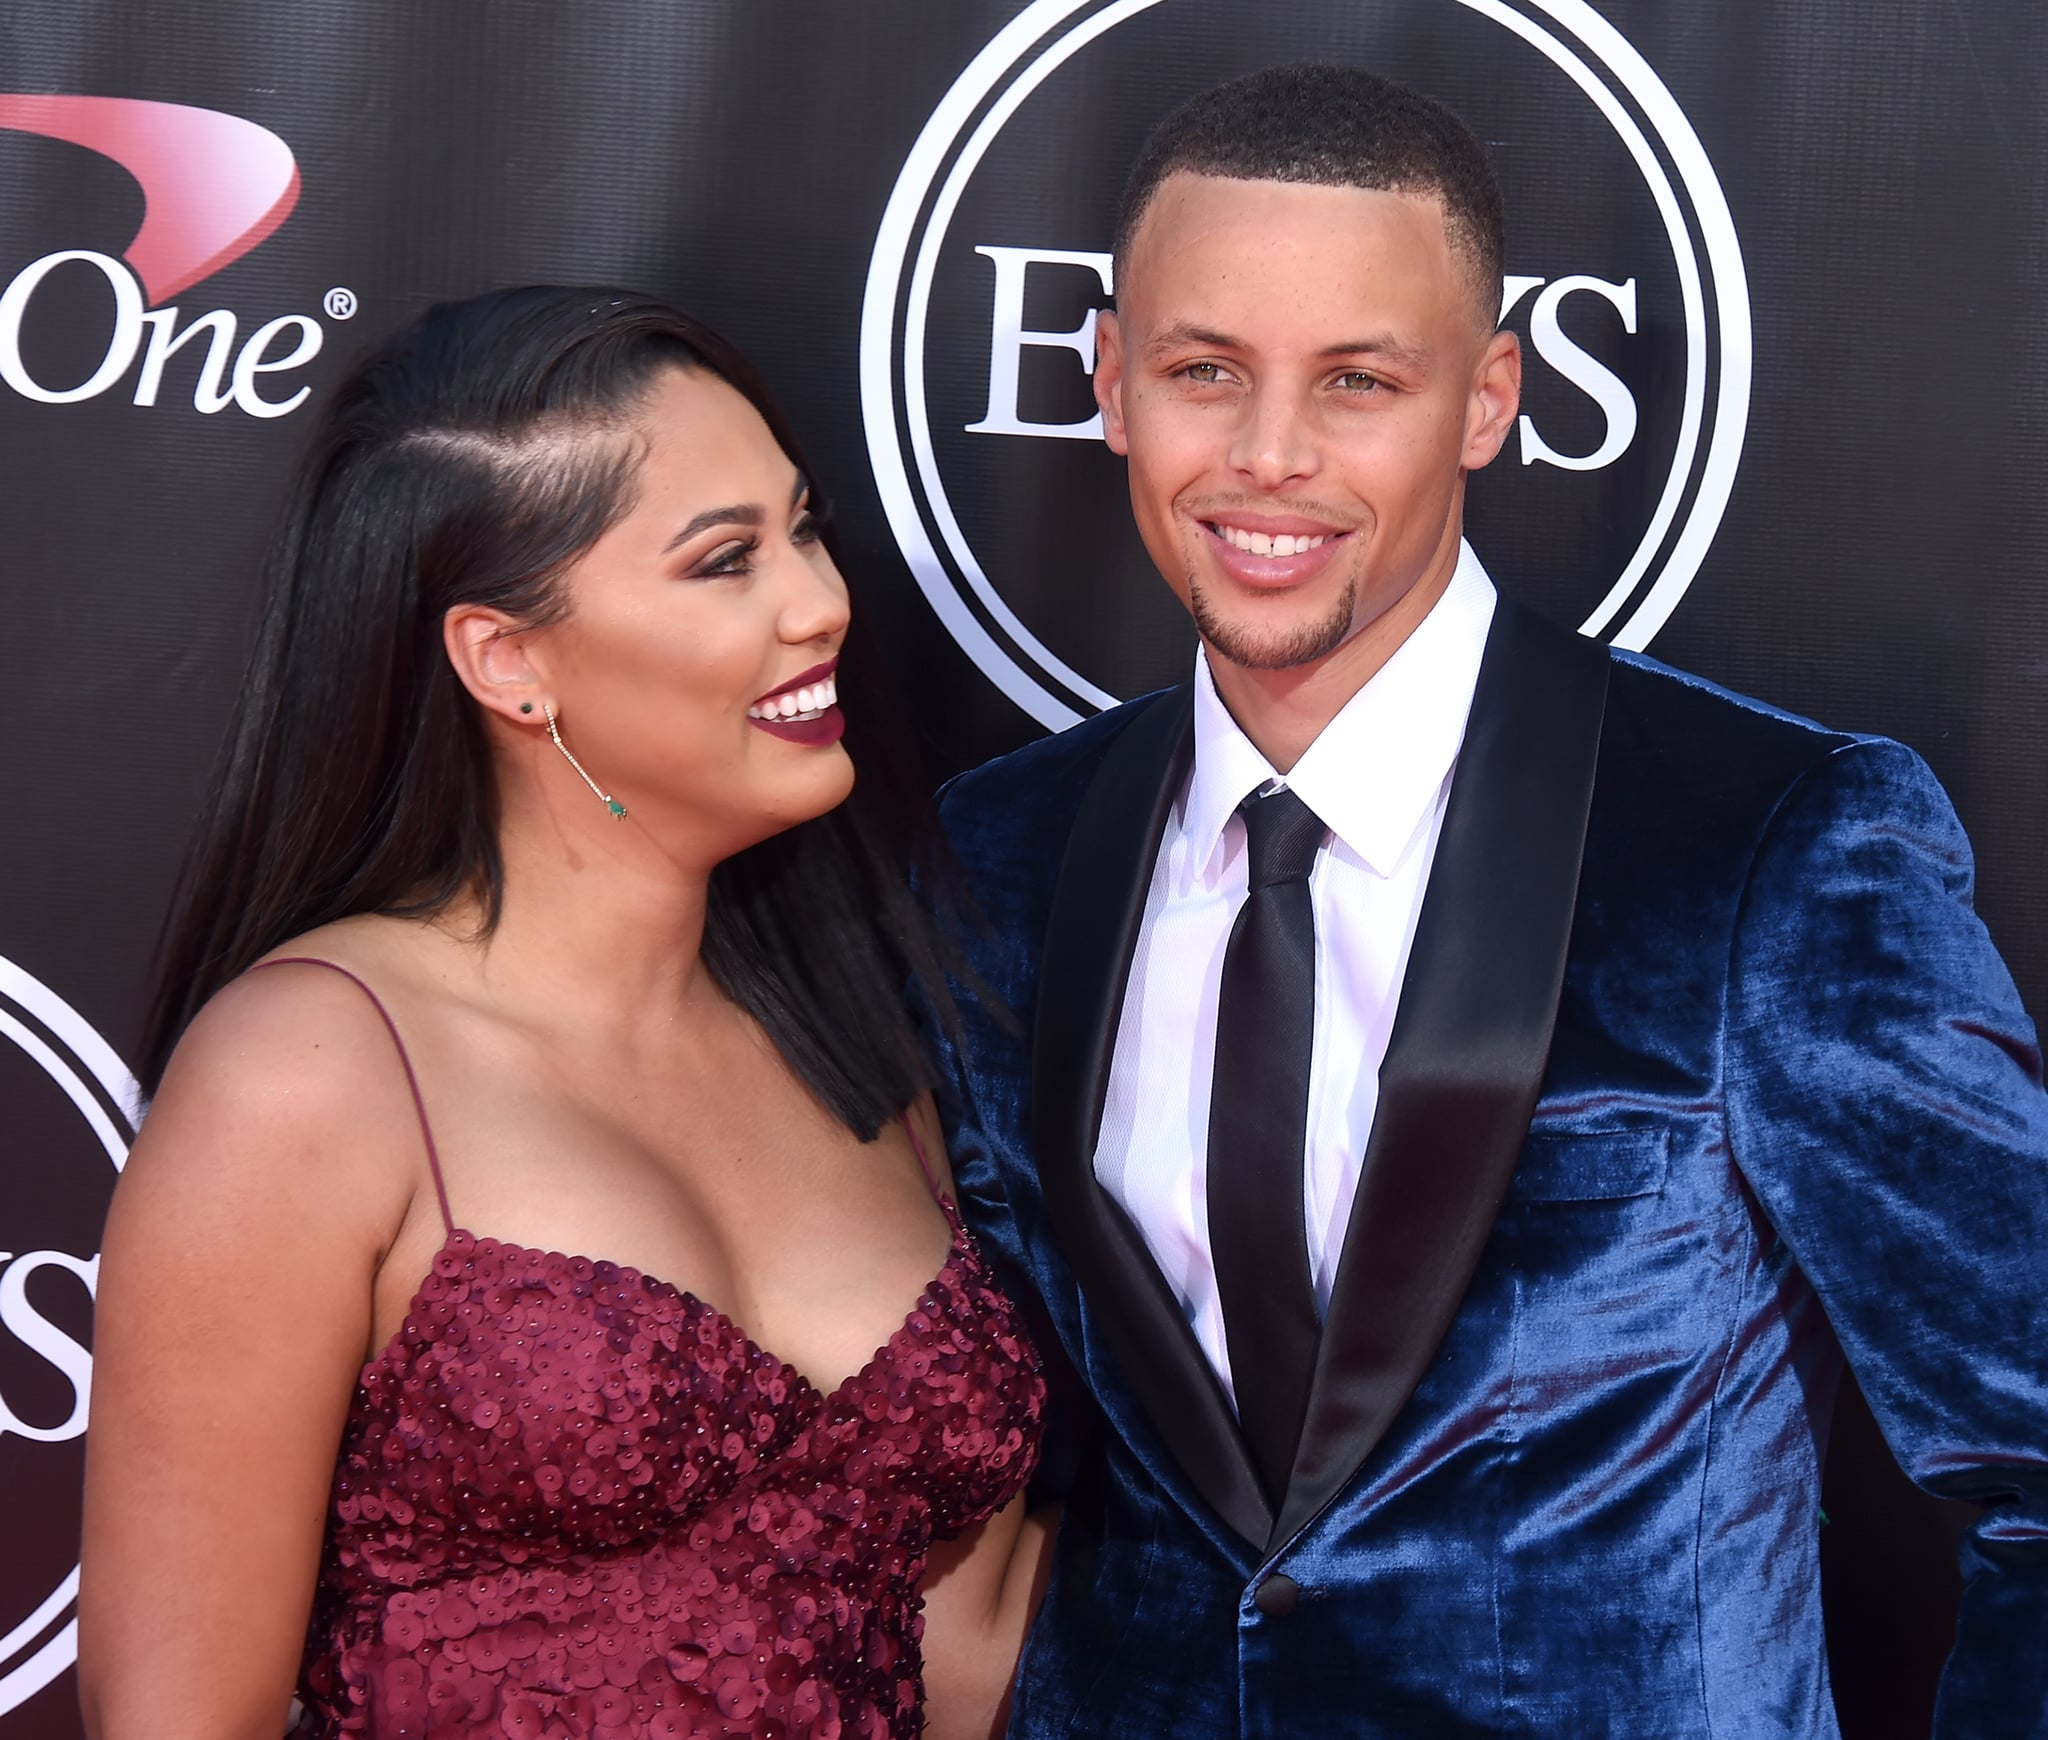 6ff1805b1a3 Stephen Curry Quote About Marriage With Ayesha March 2018. Stephen Curry  Reveals the ...